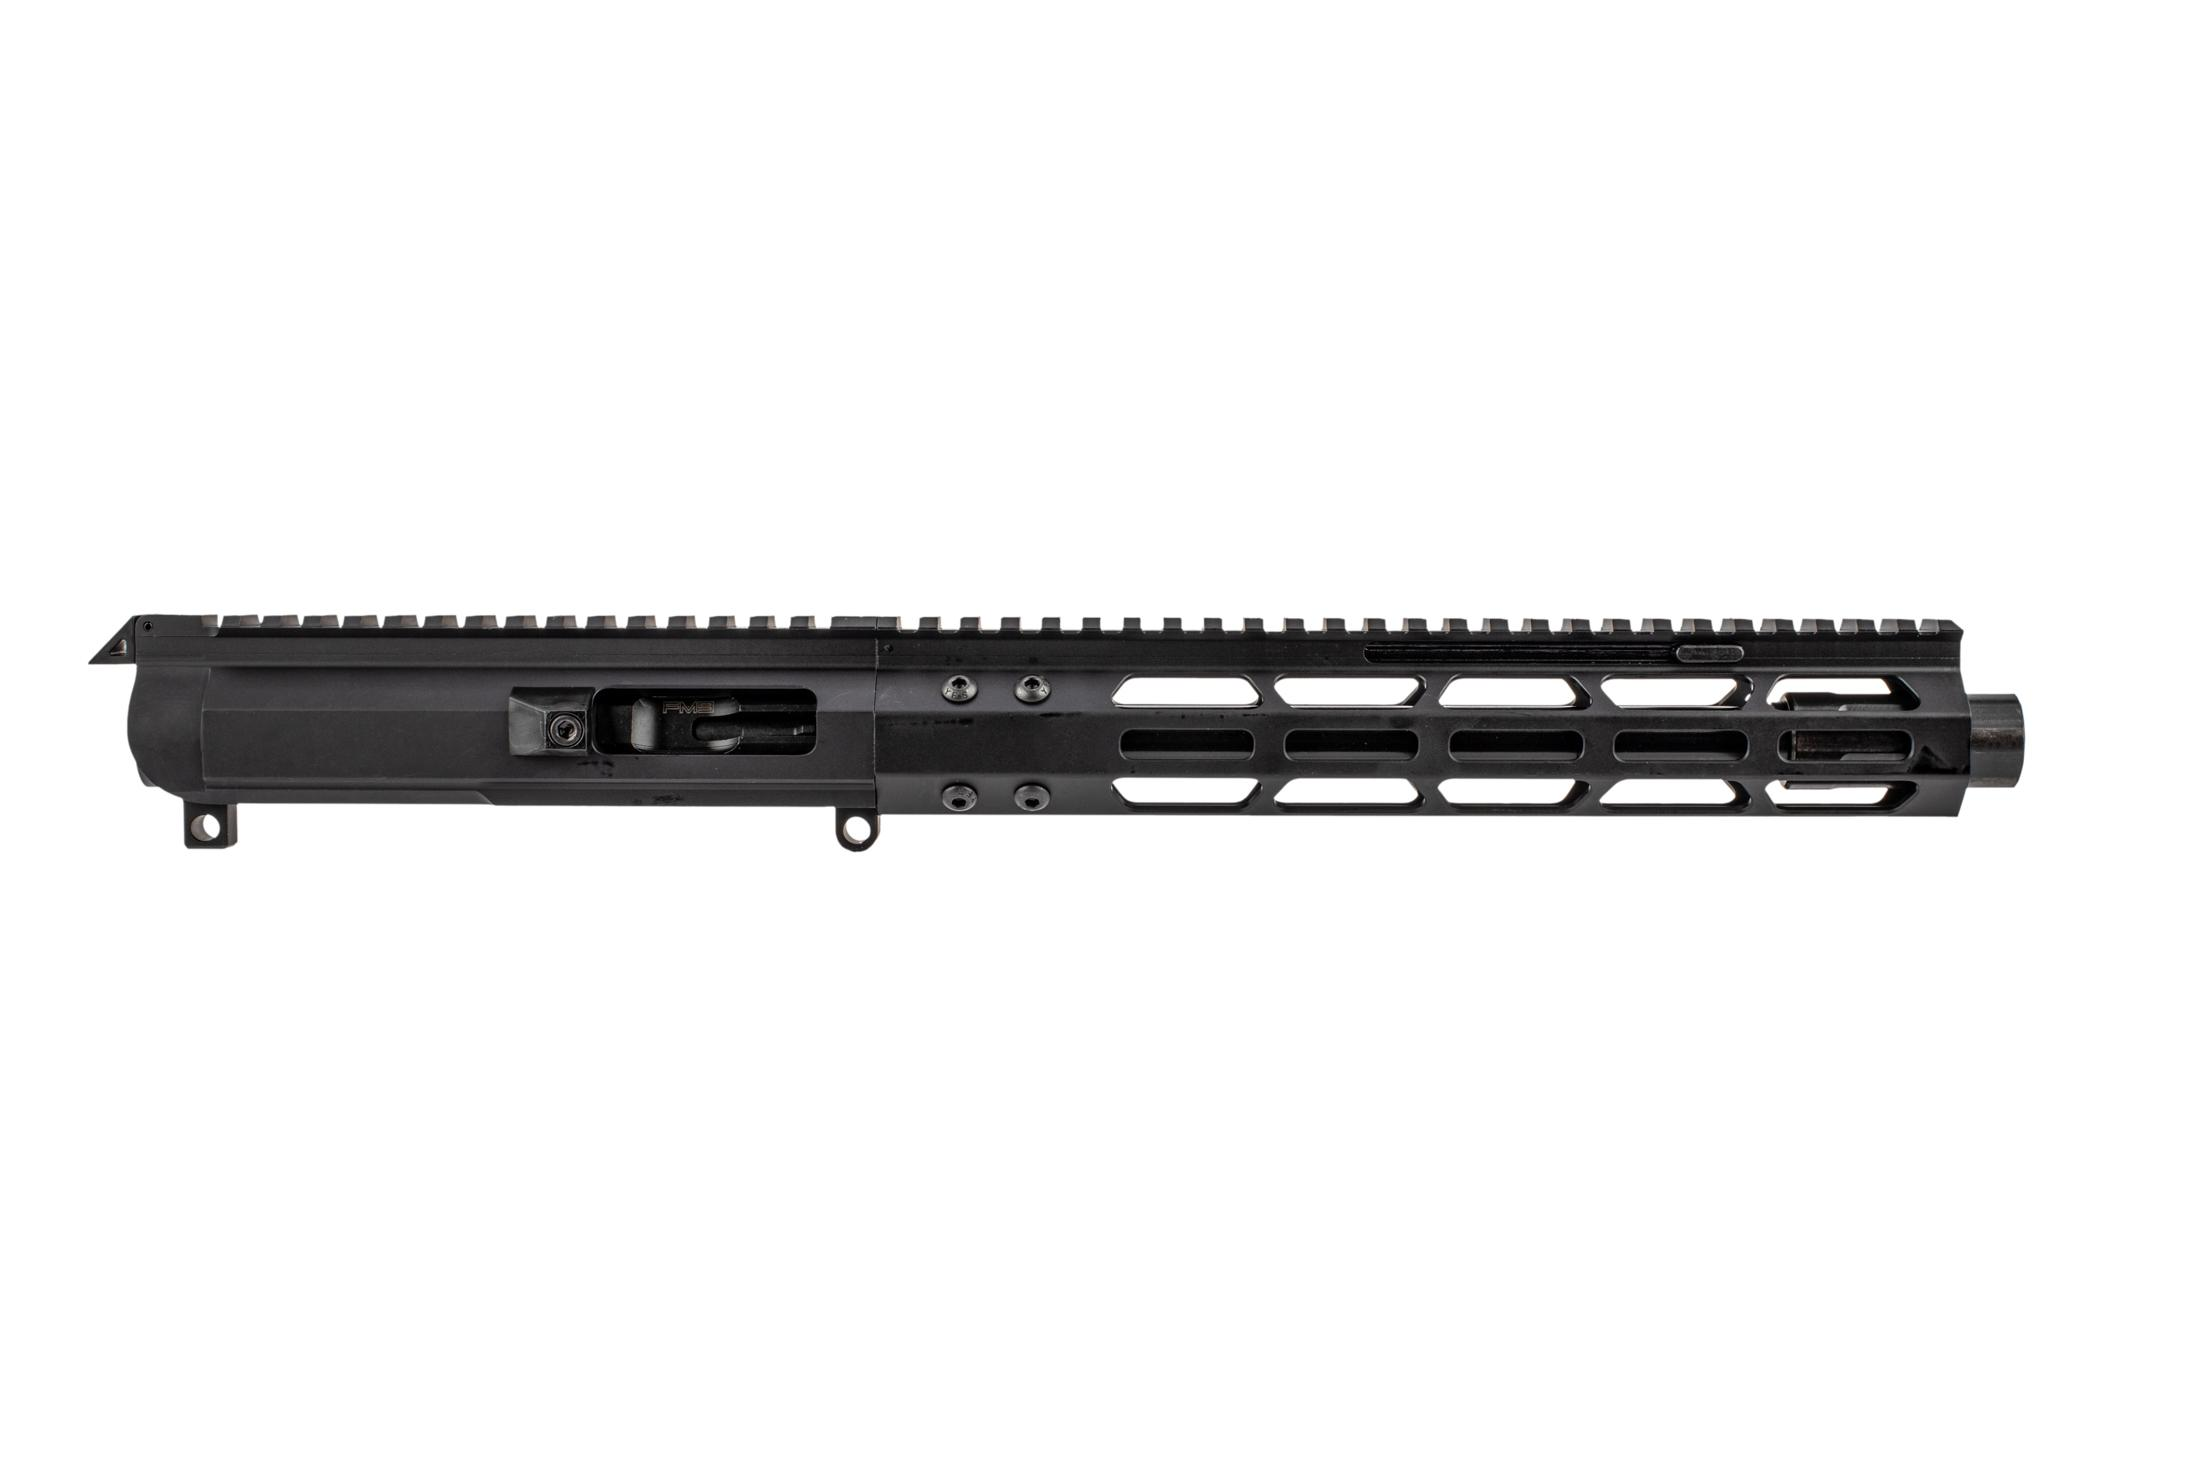 "Foxtrot Mike Products 9.25 9x19mm 1:10 Complete Upper - 10"" M-LOK Rail with Blast Diffuser"